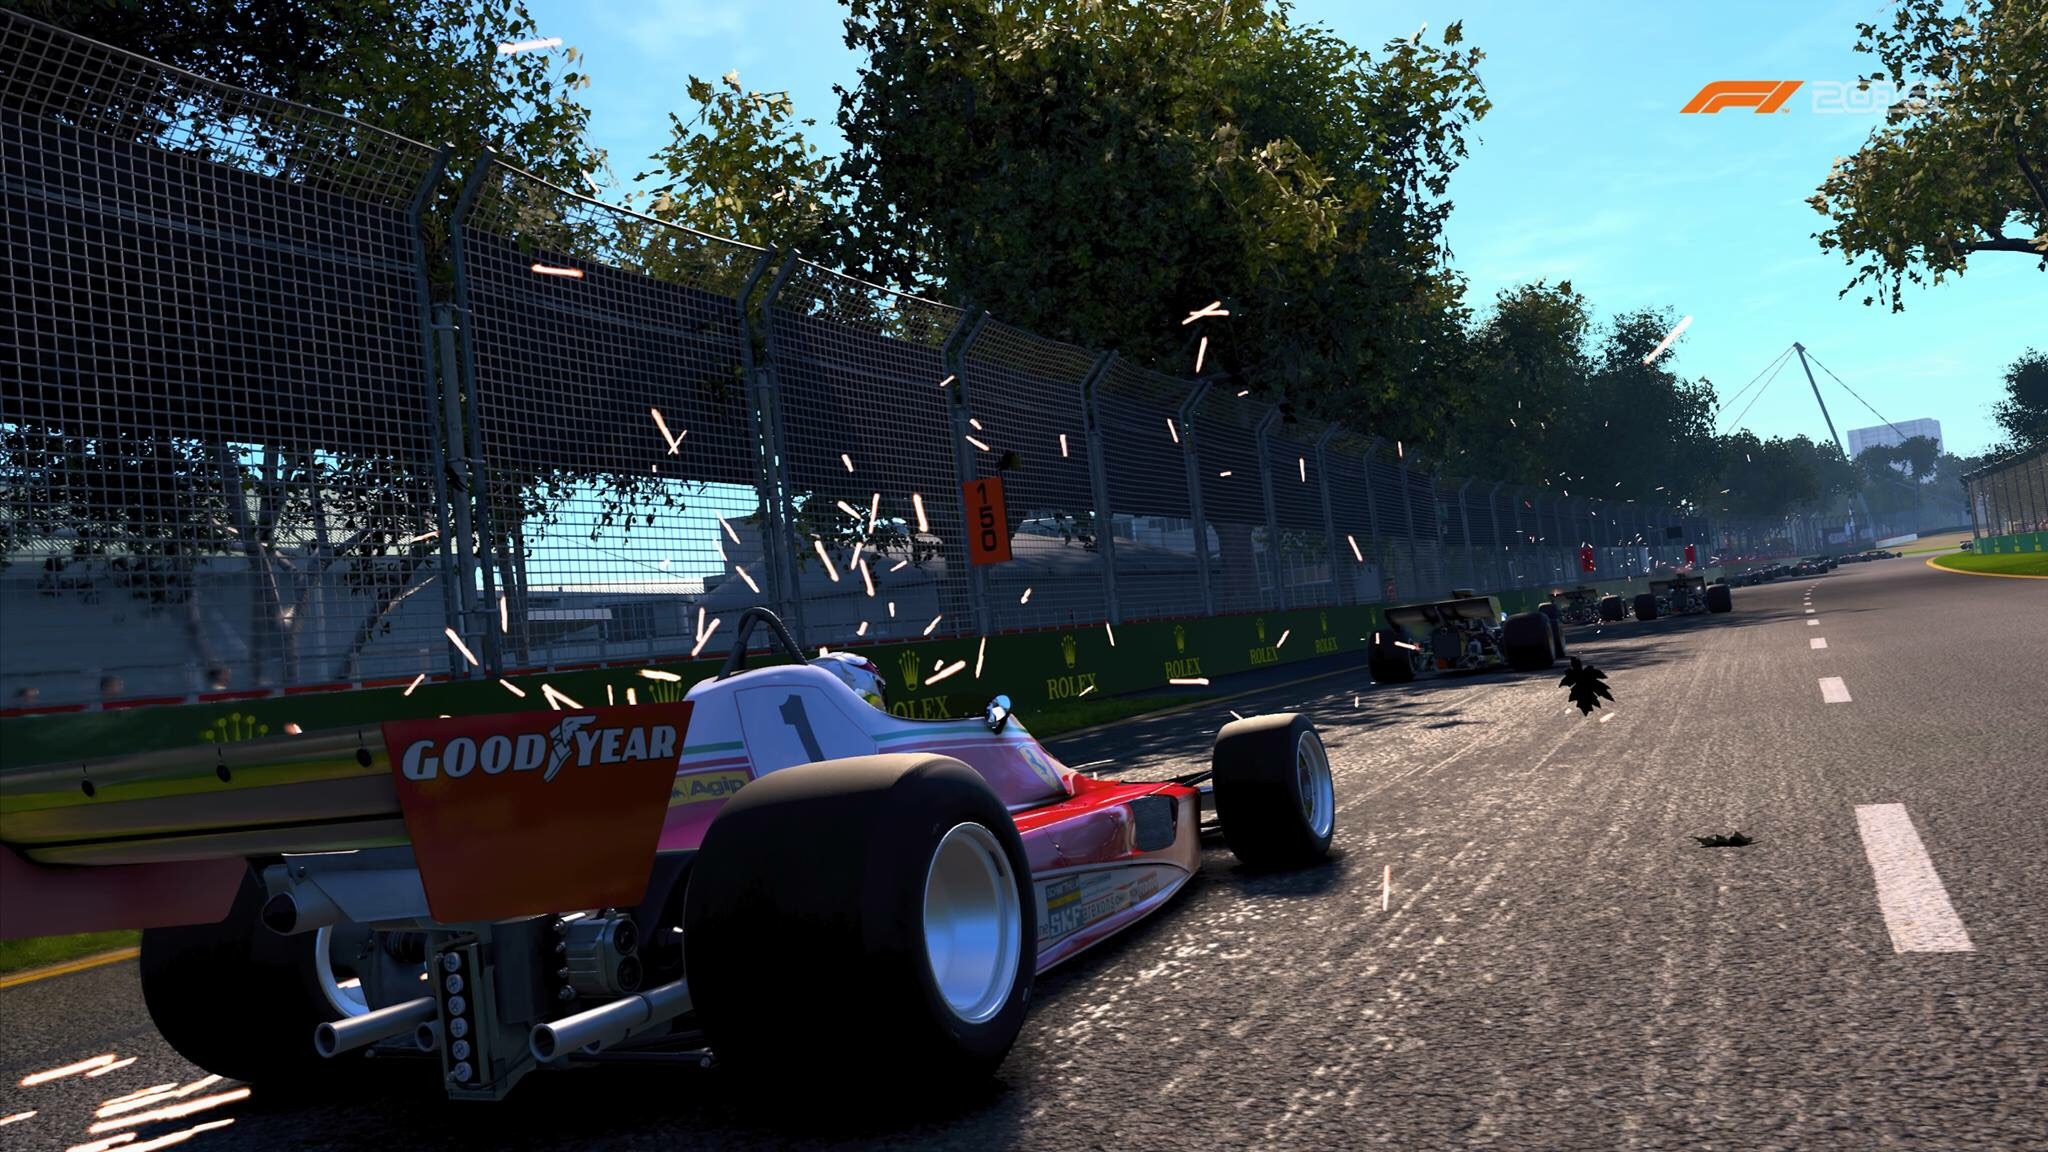 F1 2018 Review: Perhaps One of the Best Racers Ever - Operation Sports